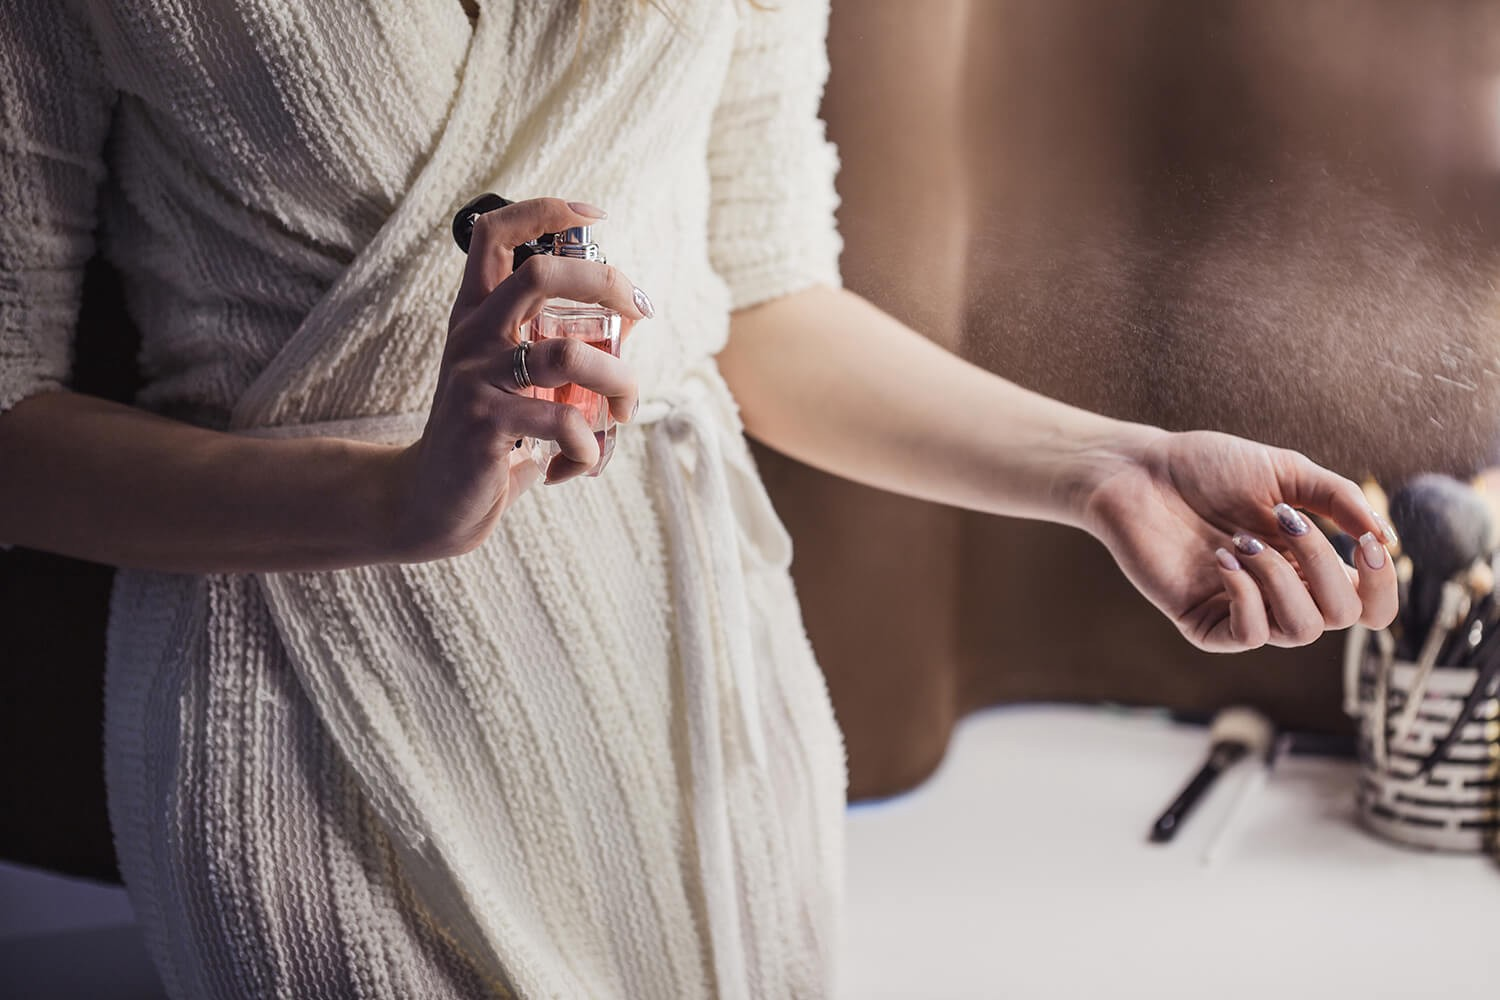 How to make him miss you and drive him crazy with your perfume